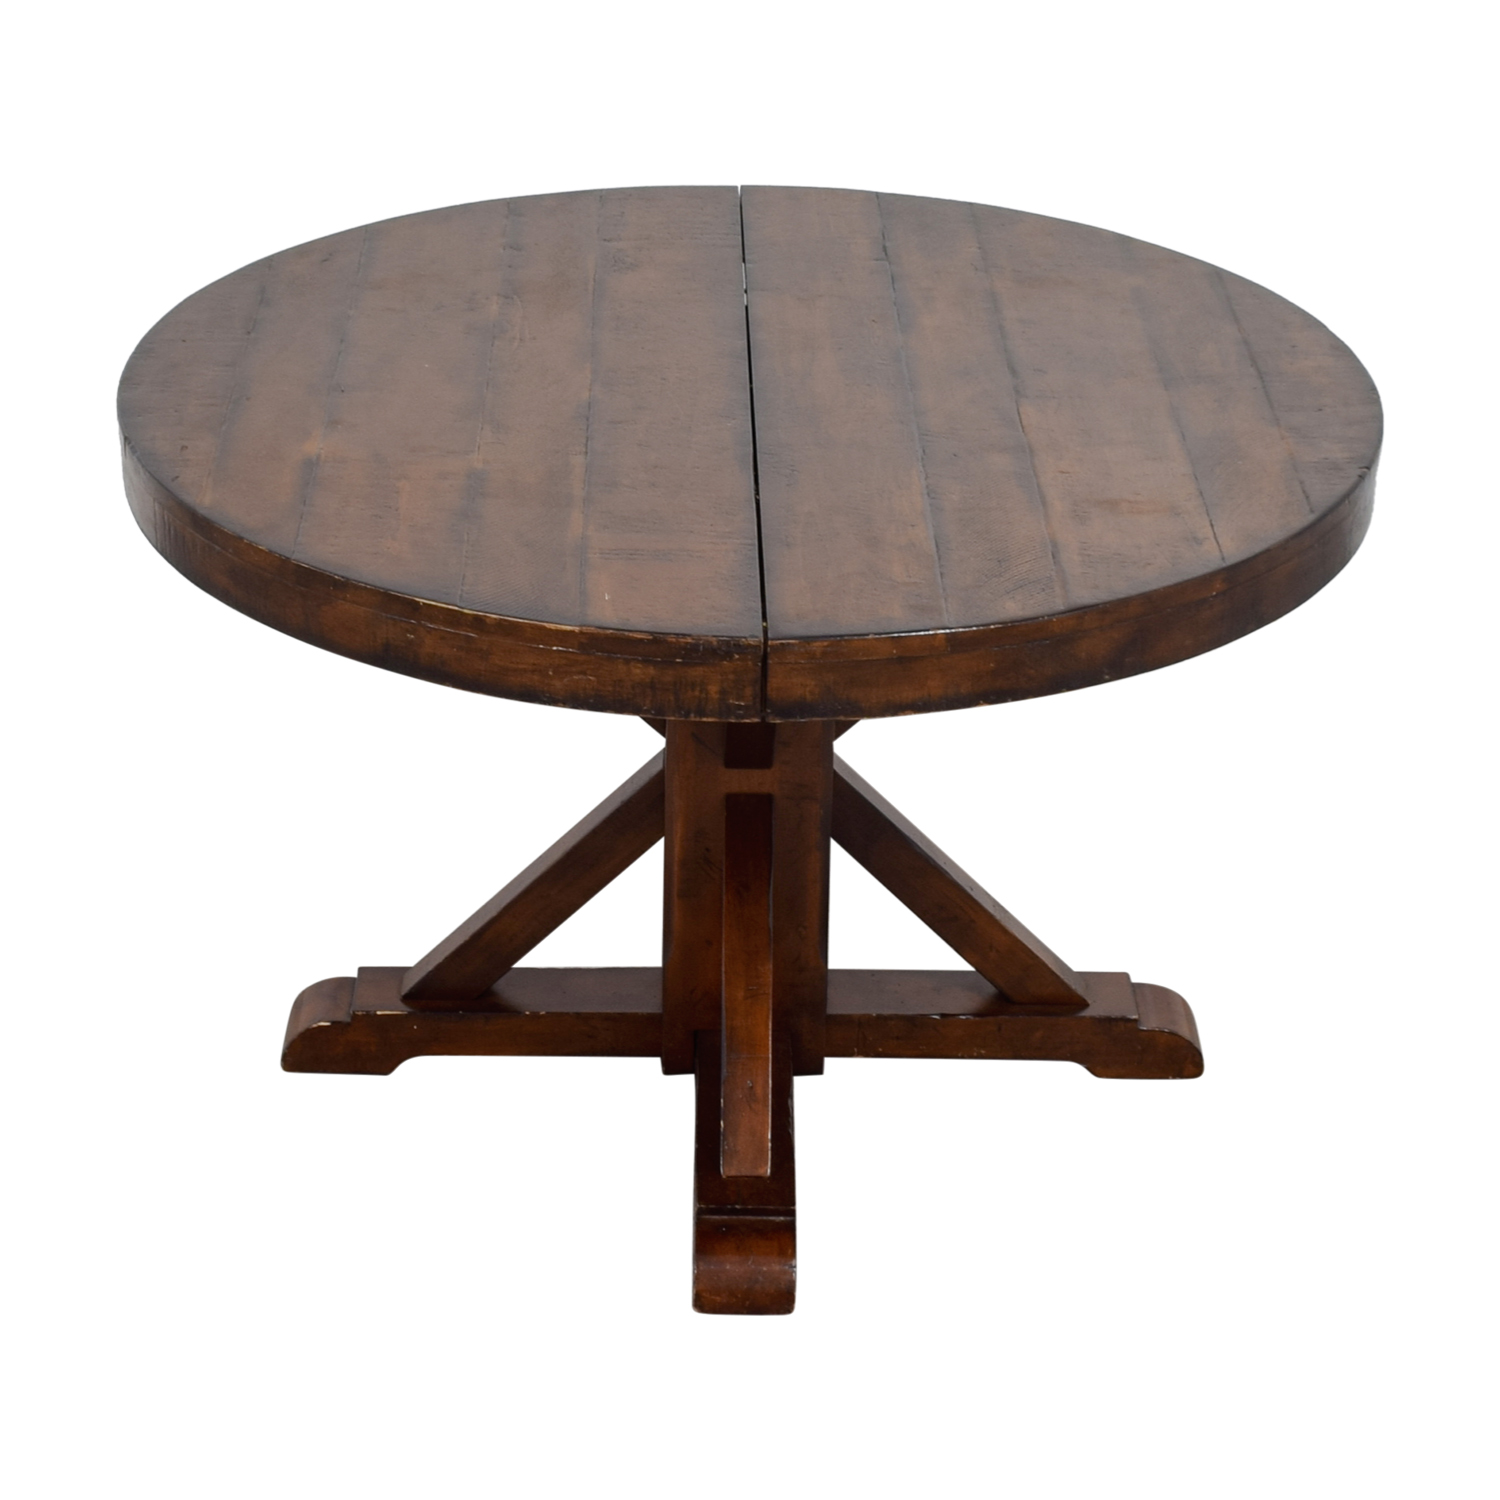 54 off pottery barn pottery barn benchwright extending round pedestal dining table tables